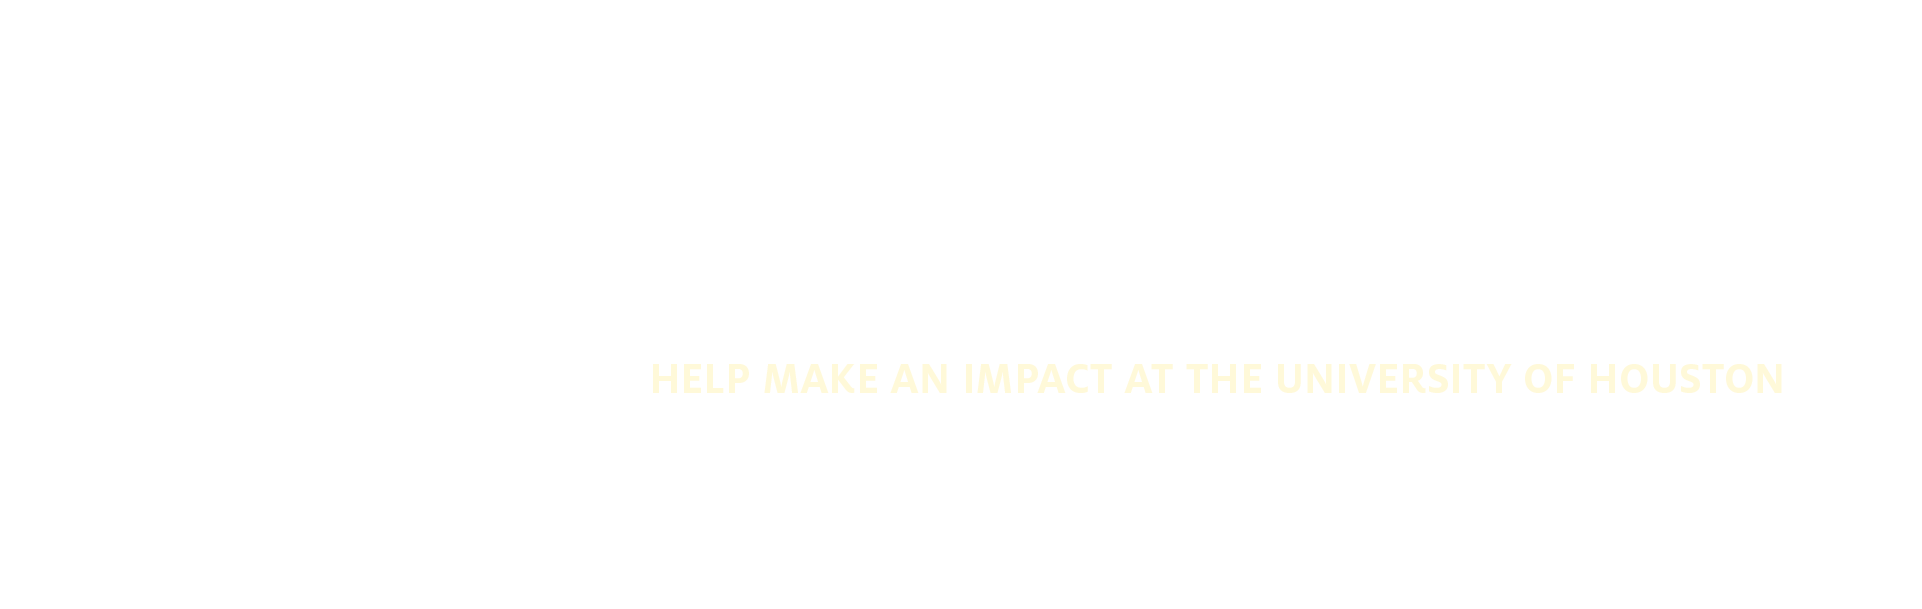 help make an impact at the university of houston